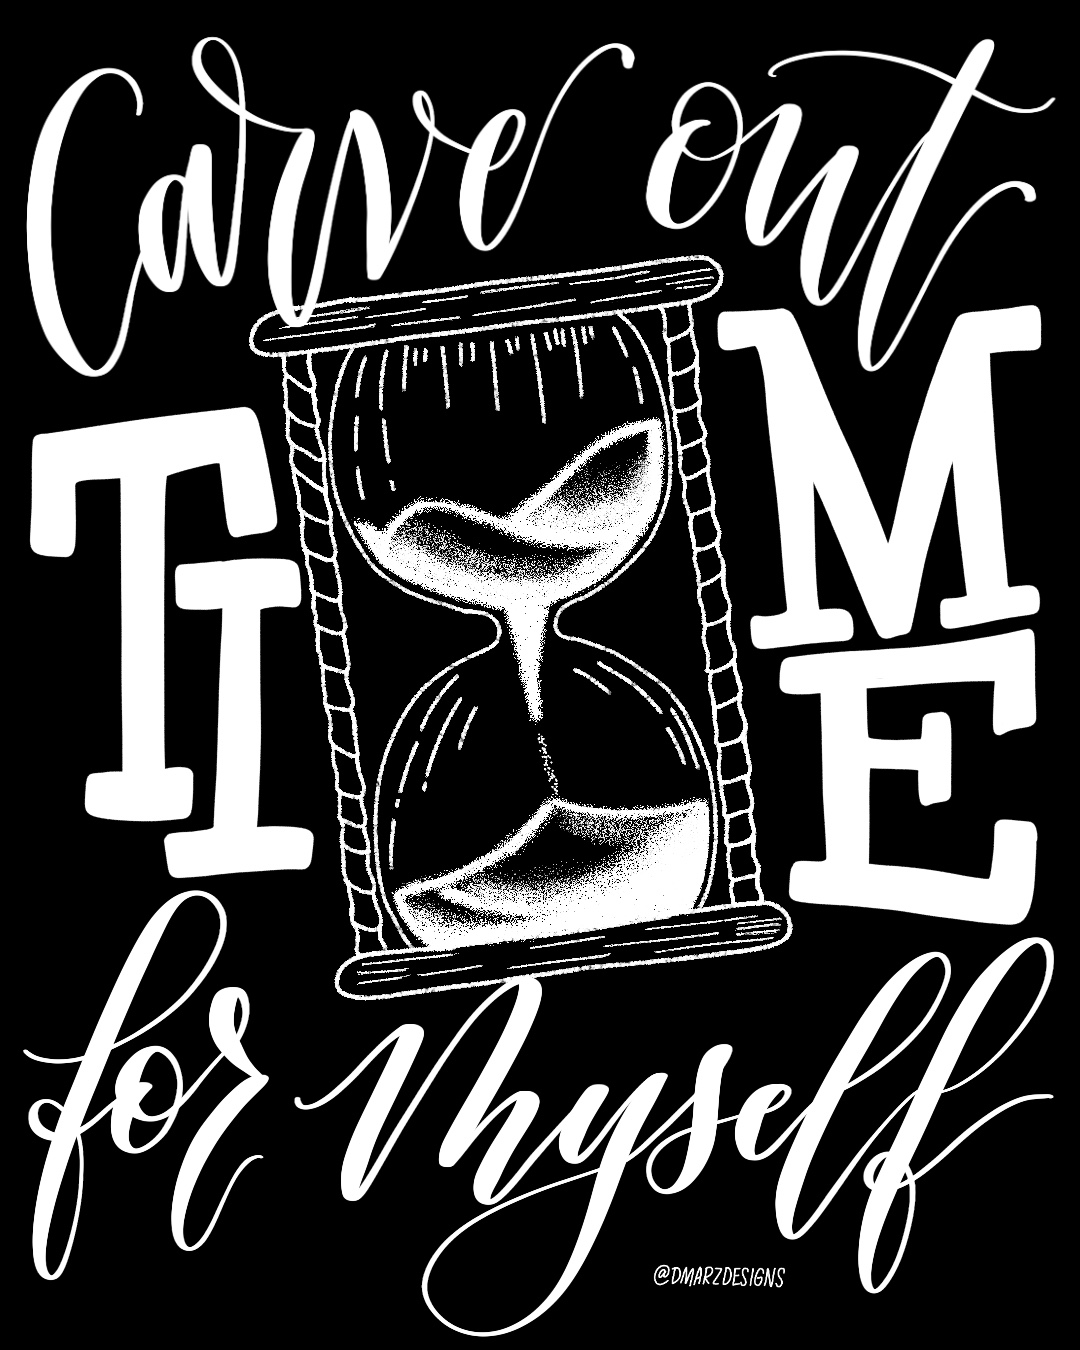 Carve Out Time For Myself - Version 1